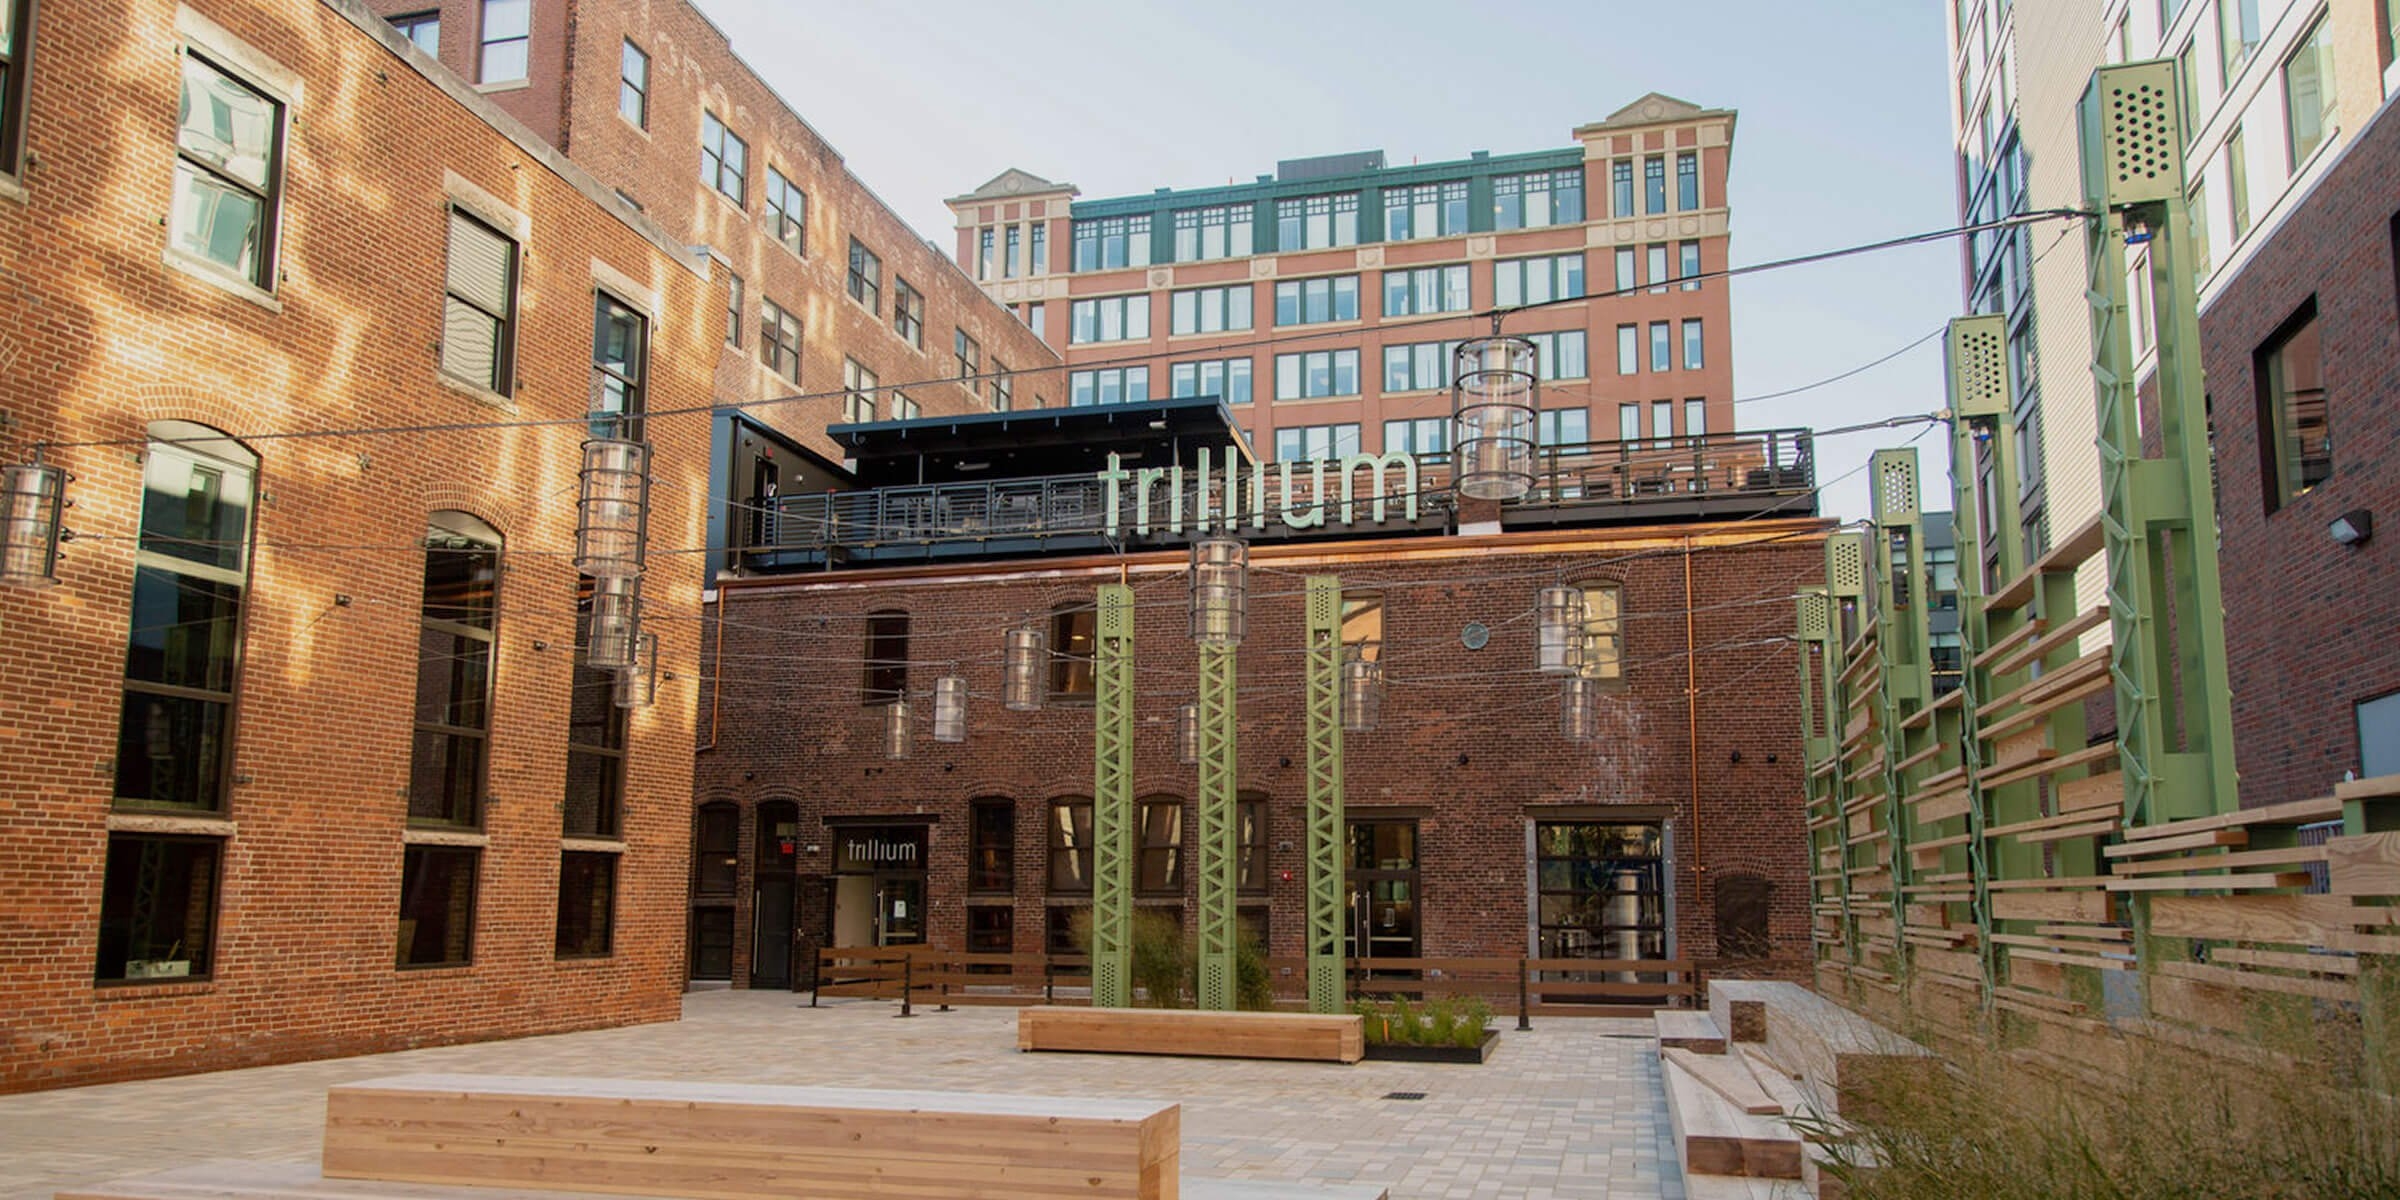 Outside the entrance to the Trillium Brewing Company Fort Point location in Boston, Massachusetts